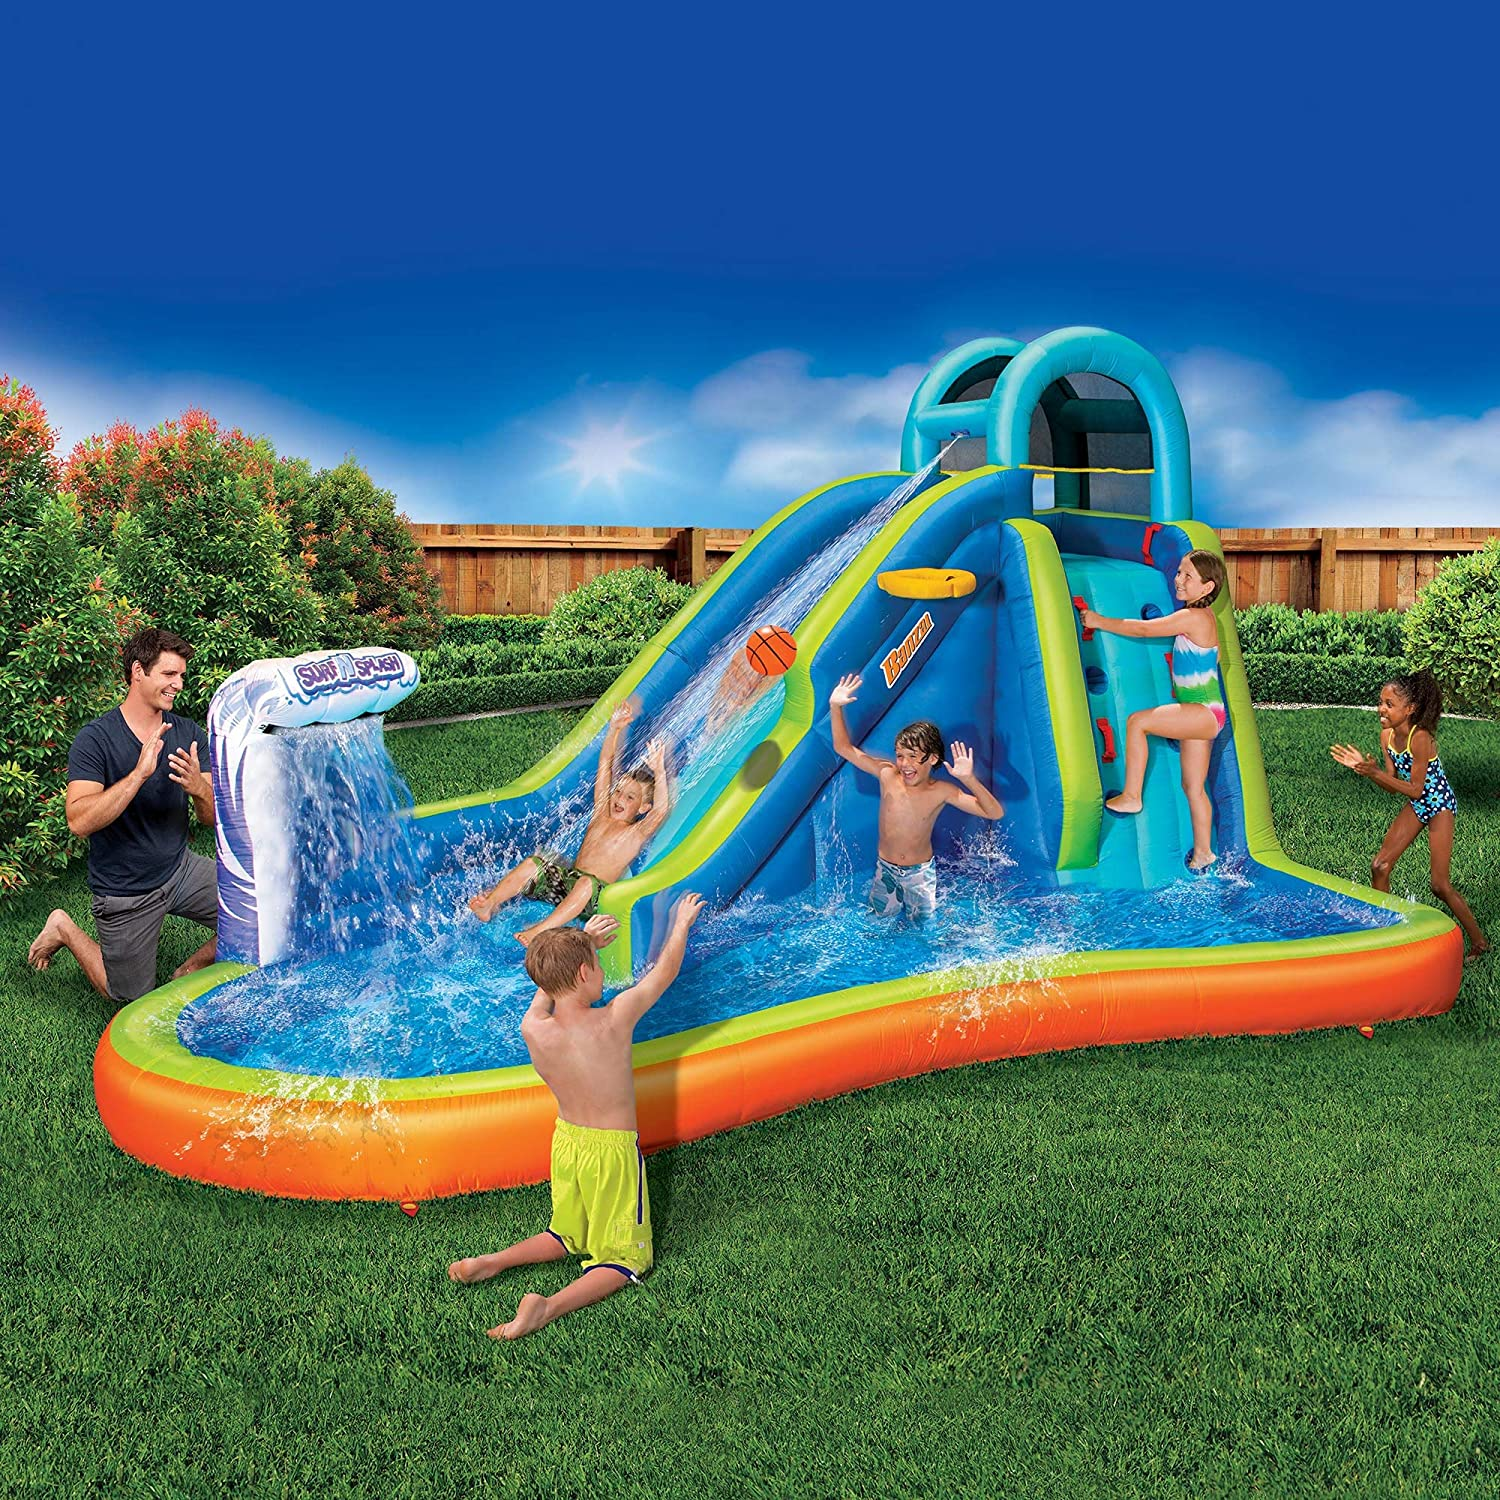 Top 7 Best Water Slide Pools Inflatable (2019 Reviews) 7